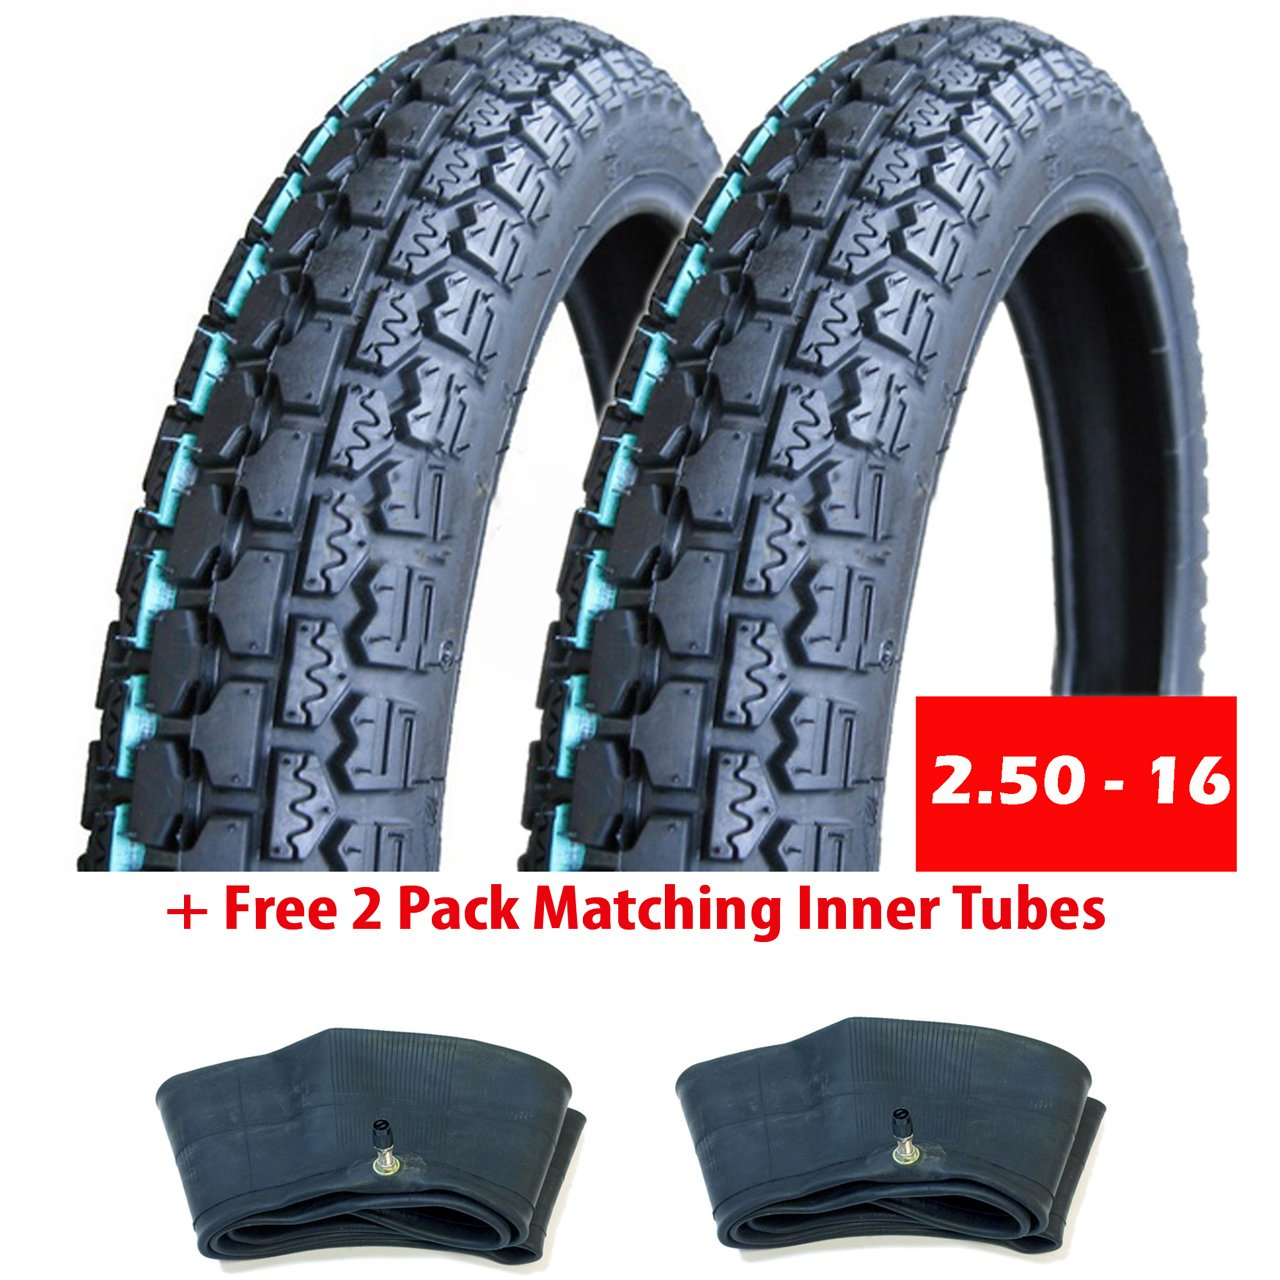 BUNDLE Motorcycle Tires: Two Tires Size 2.50 - 16 (P43) + FREE 2 Pack Matching Inner Tubes - Performance Motorcycles Dual On/Off Road Slightly Knobby Tread MMG 2_50-16 (P43)